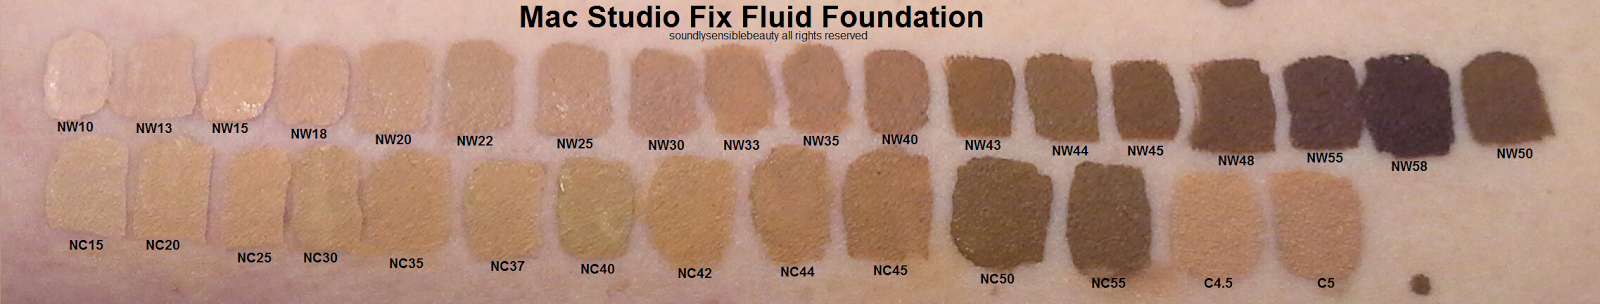 Mac Studio Fix Fluid Foundation; SPF 15 Swatches of Full Coverage Shades